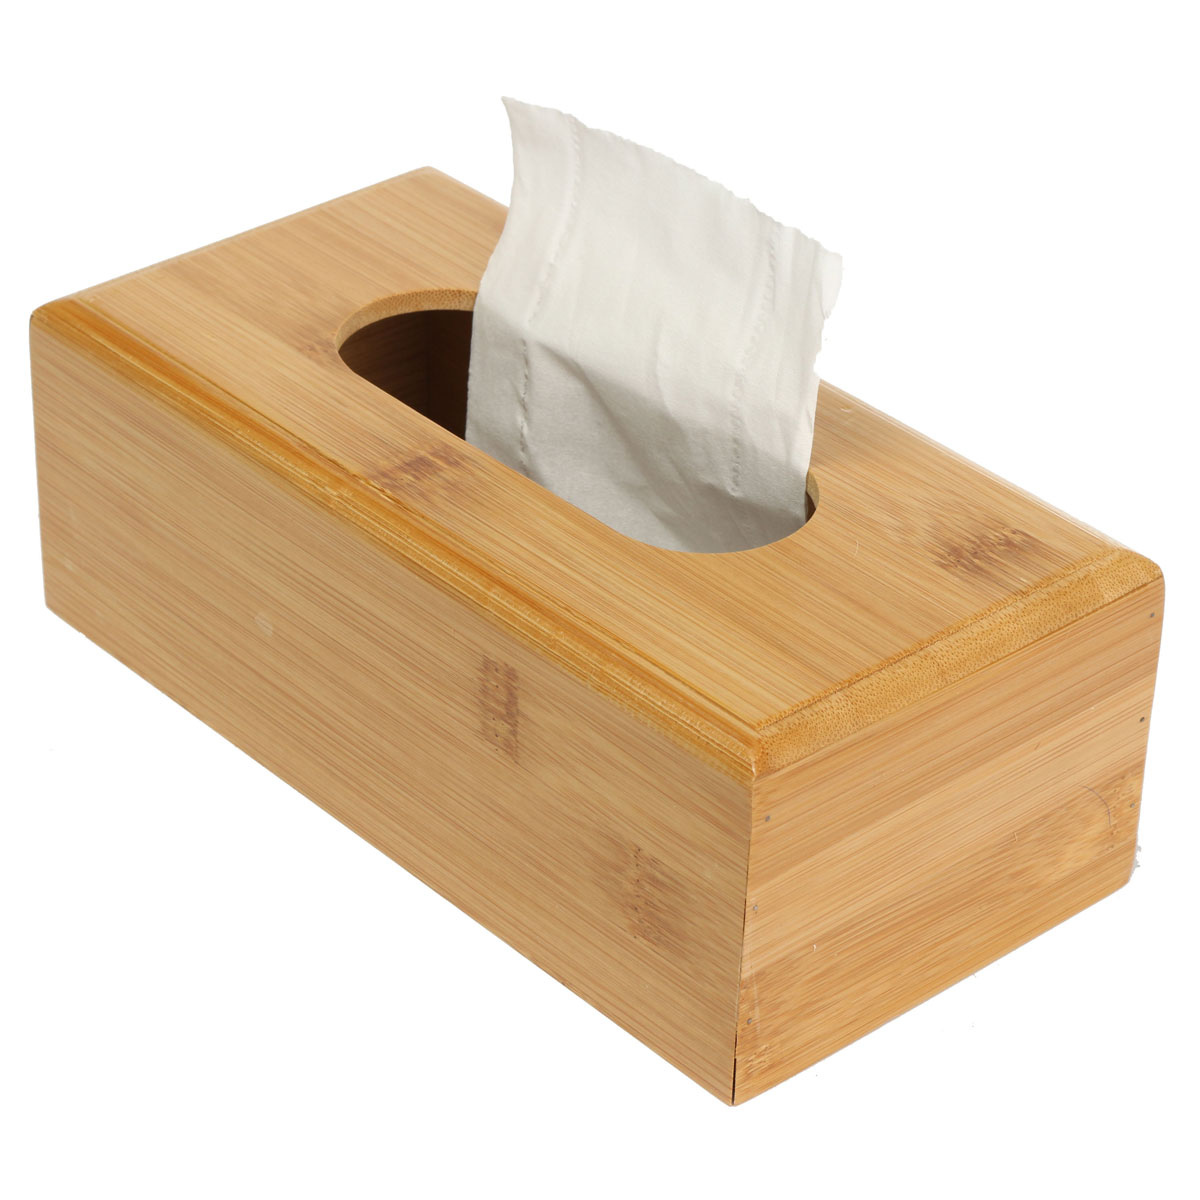 Decorative Bamboo Storage Box : Natural solid bamboo tissue box case cover holder home